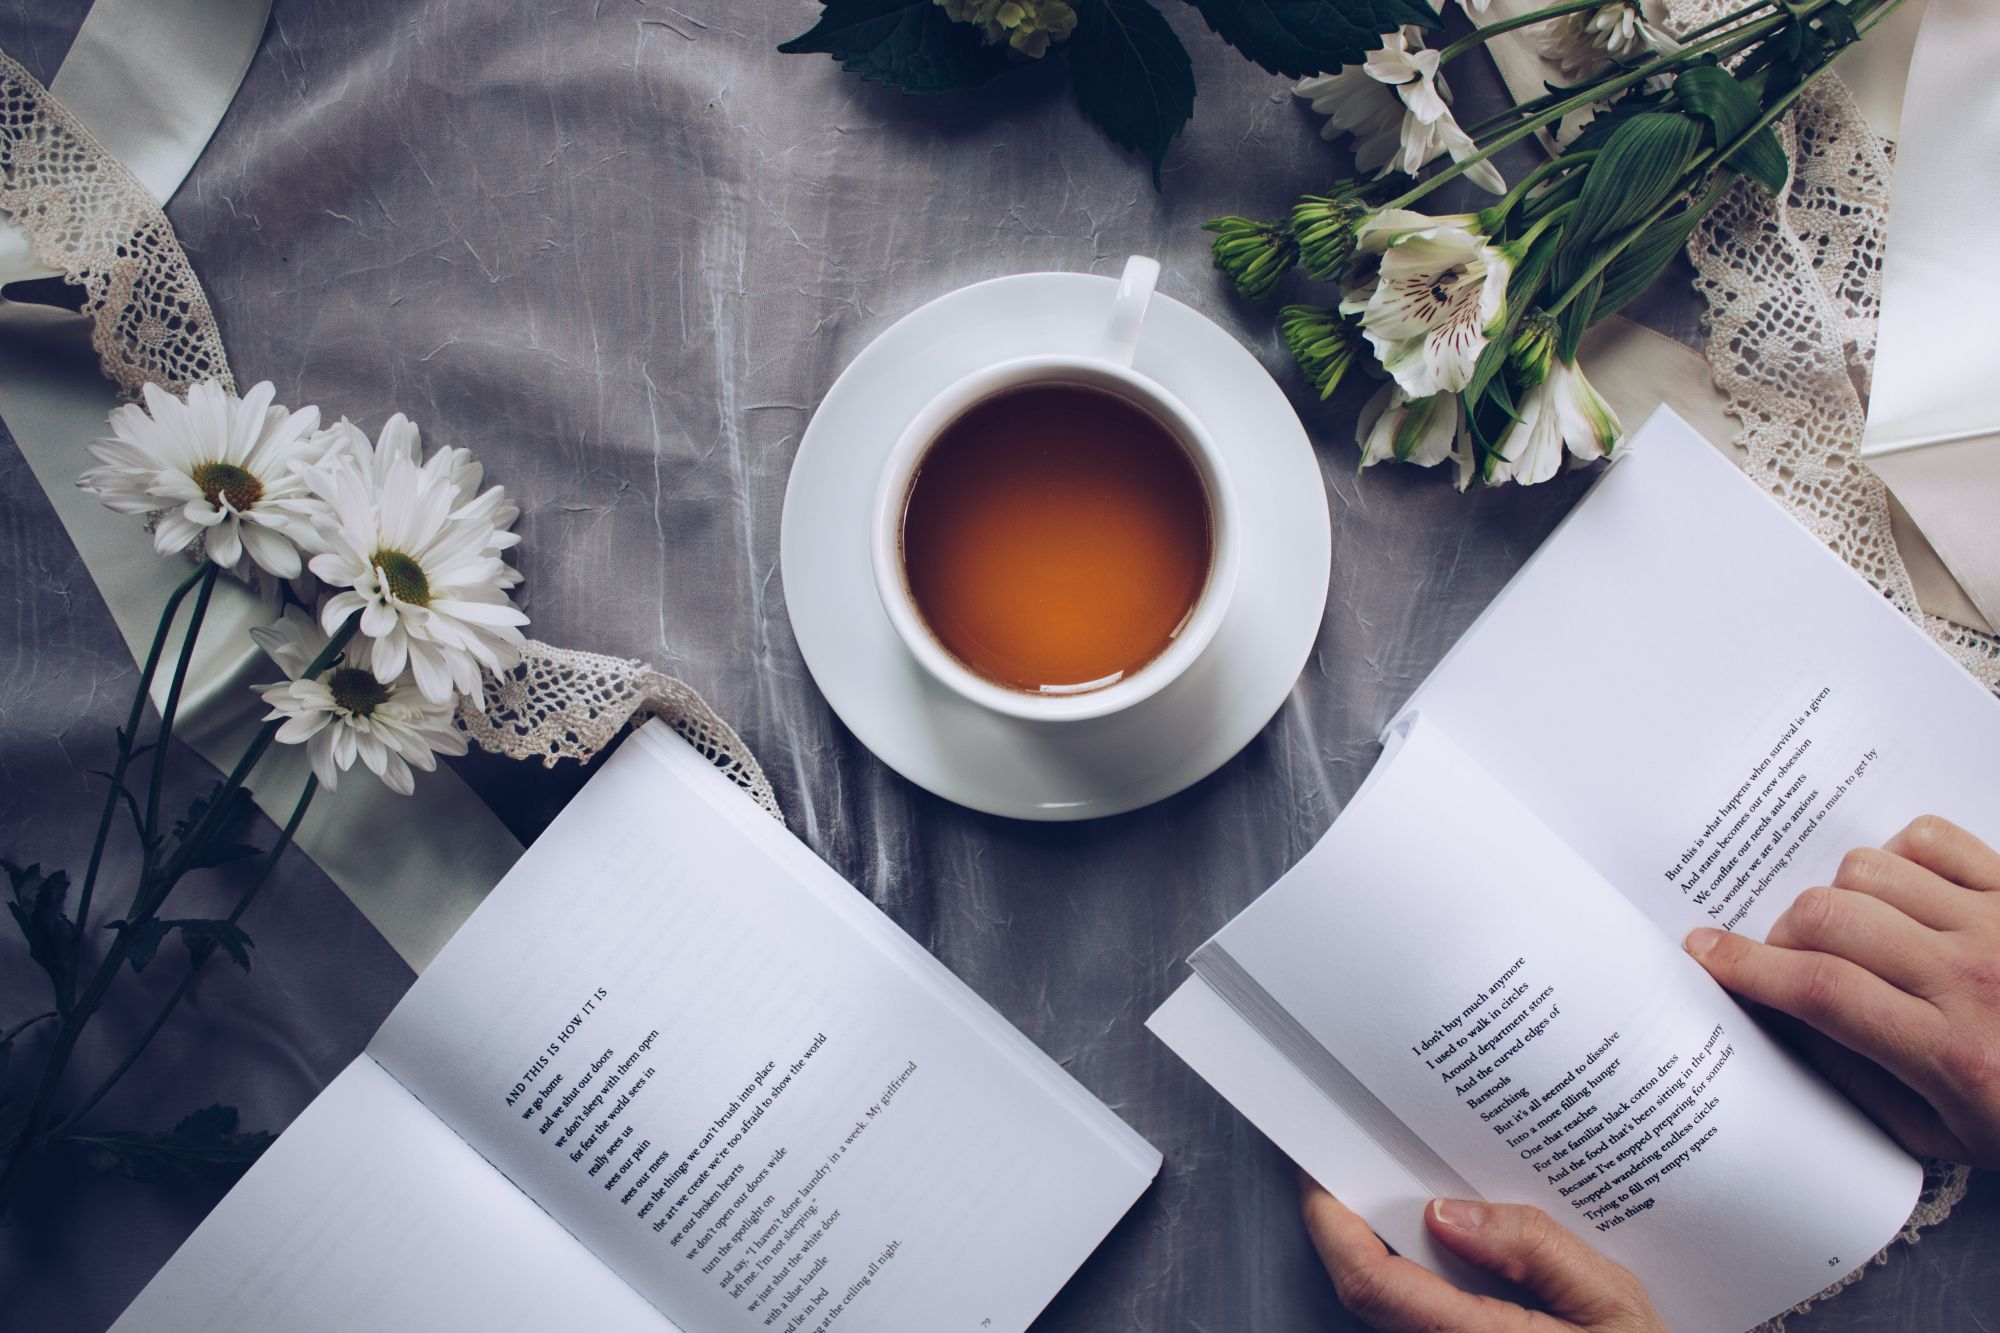 The Most Inspiring Books To Read To Uplift Your Mood